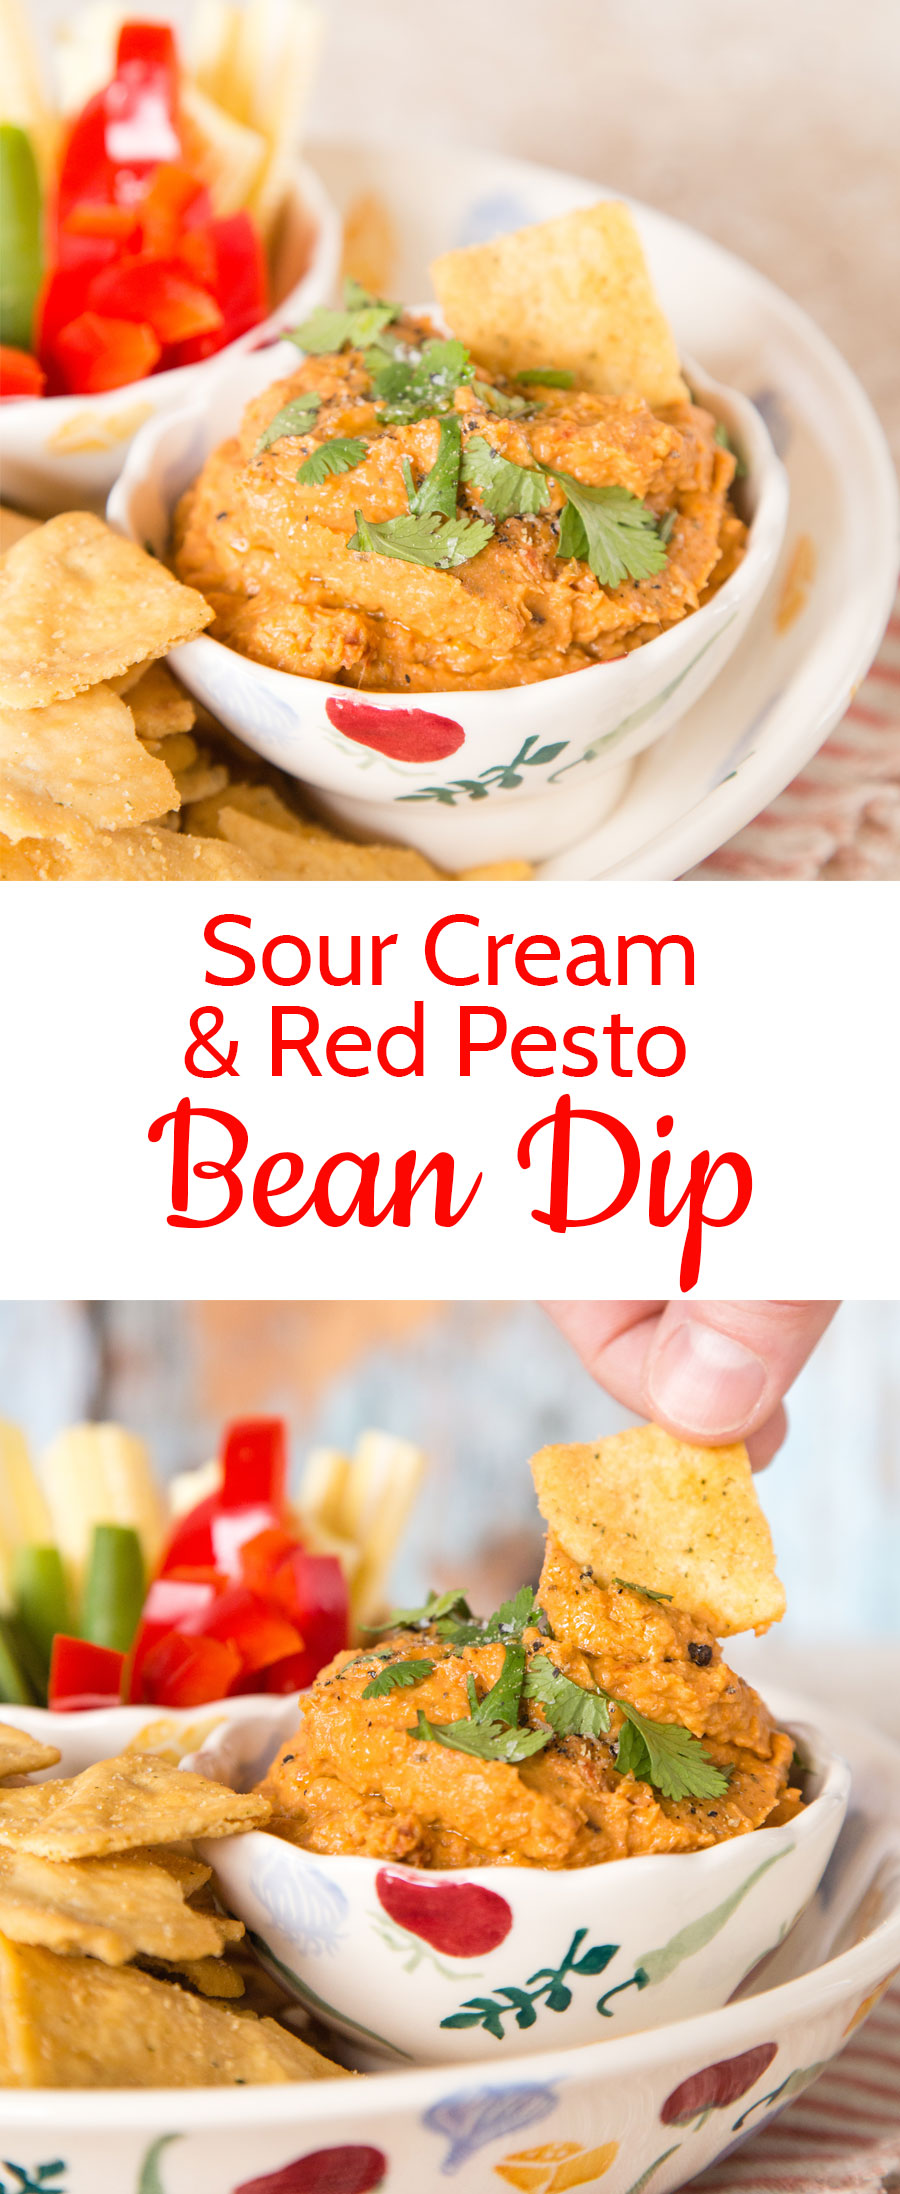 An easy to make dip, made with canned beans, pesto, sun dried tomatoes and soured cream. The perfect appetiser for a Mediterranean style meal.